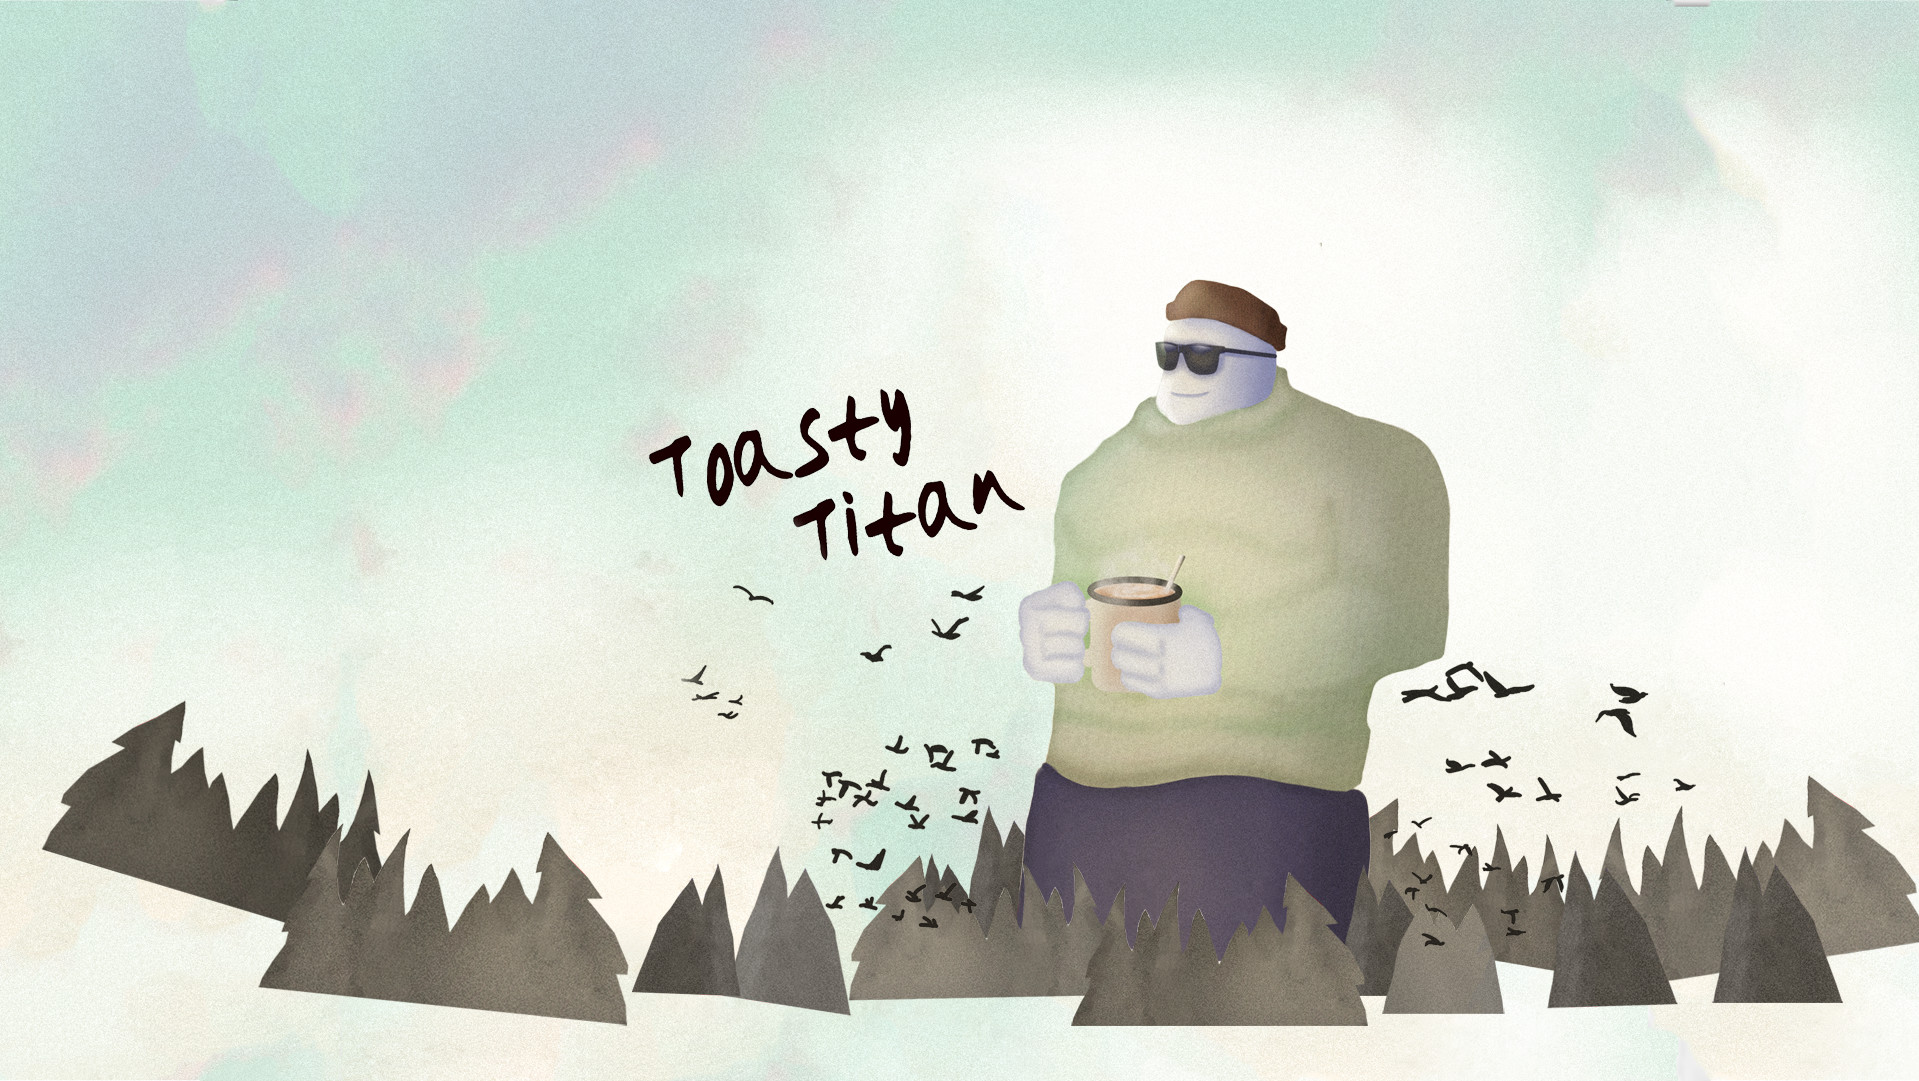 Toasty Titan